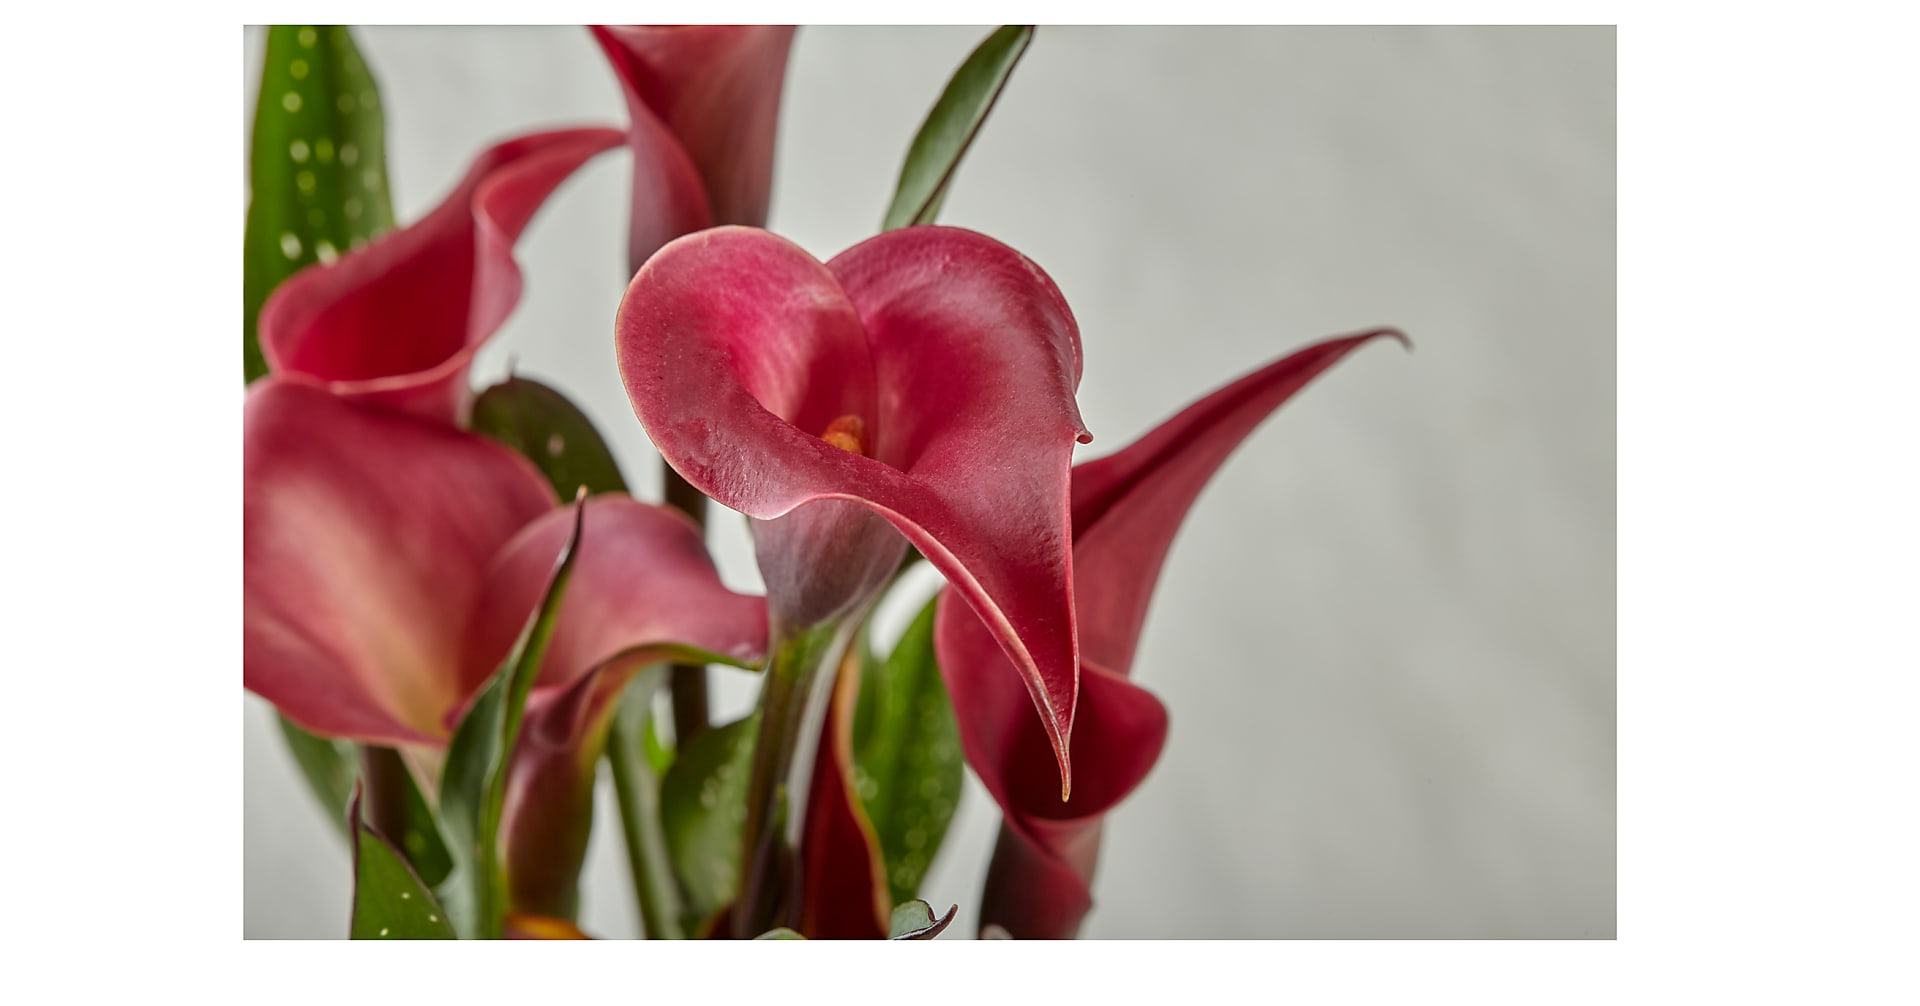 Falling in Love Red Calla Lily - Image 2 Of 2